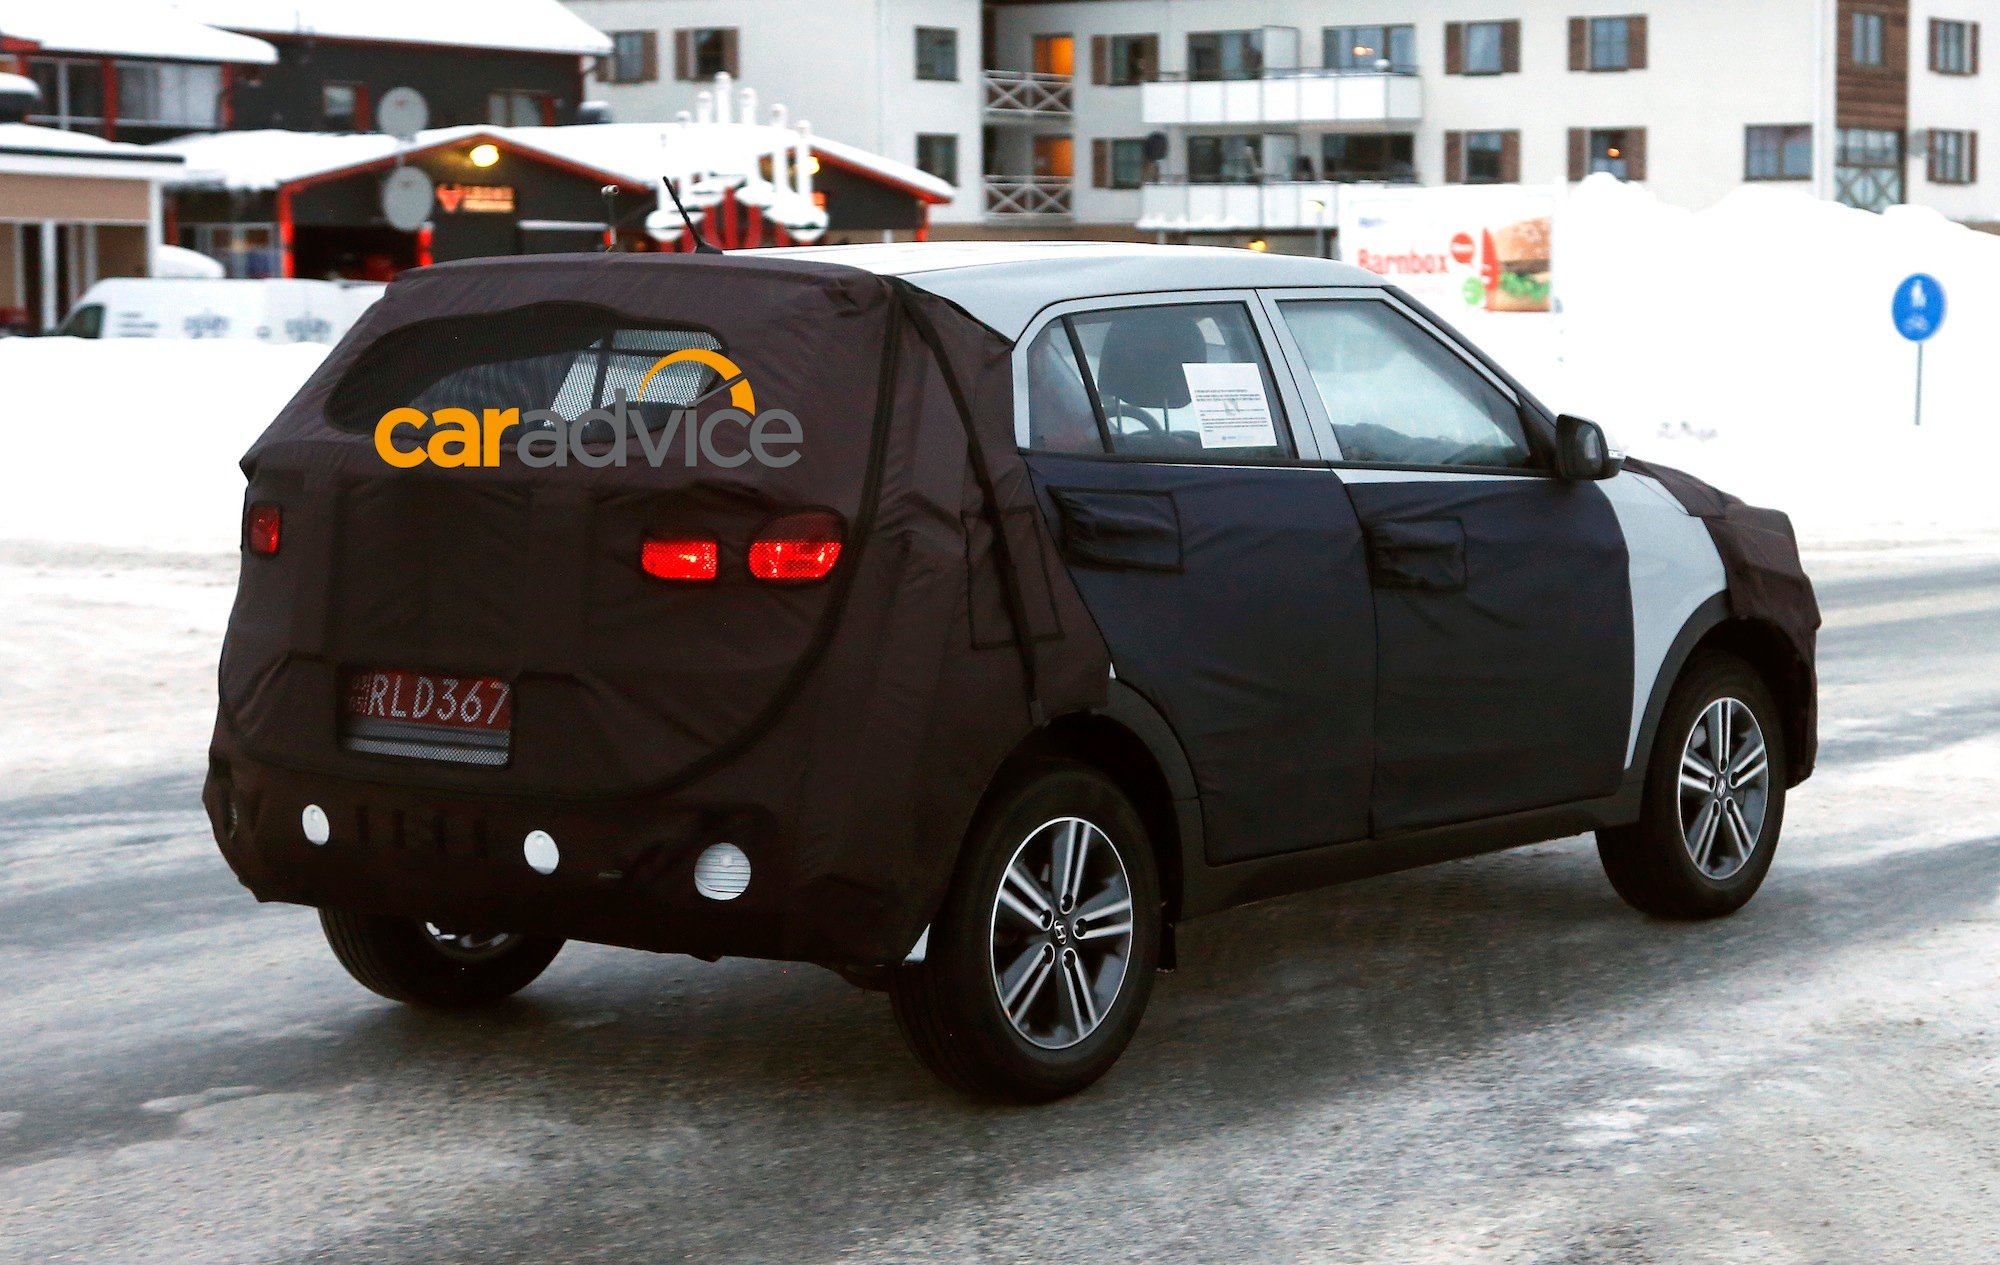 cuv inspired curb on new hyundai is based news concept photos spyshots by